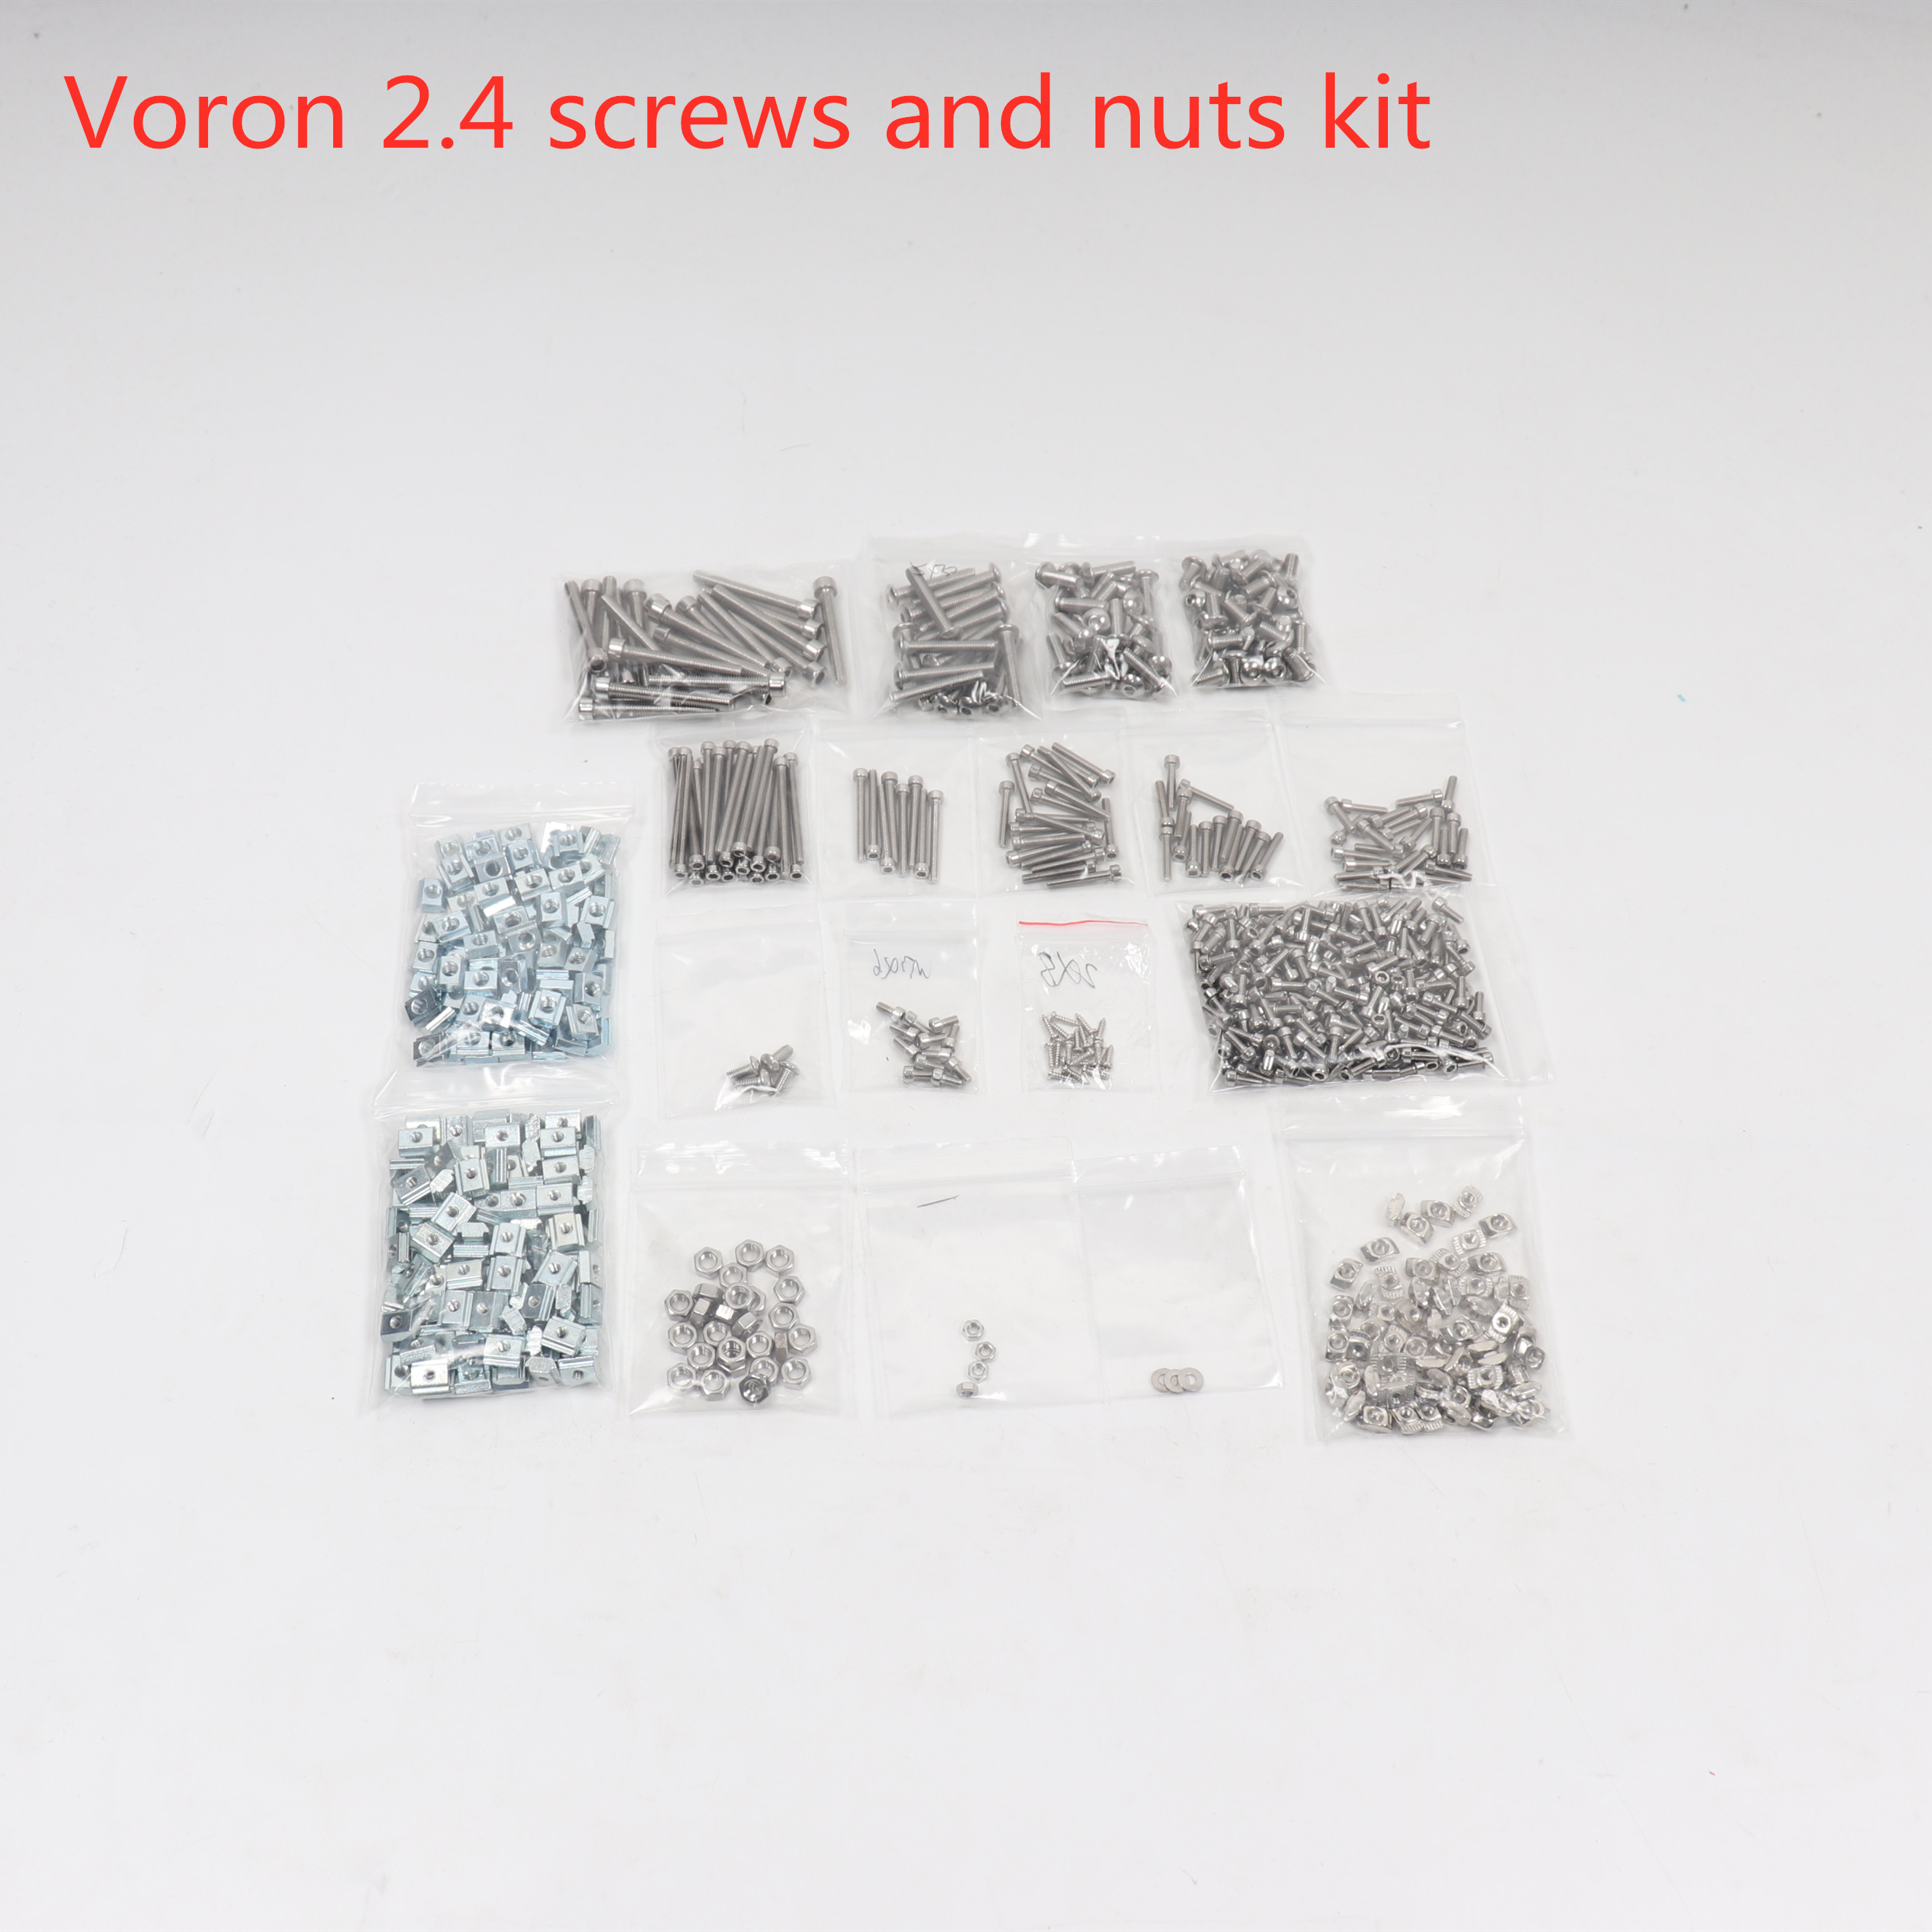 Blurolls Voron 2.4 3d Printer Project Fasteners Screws Nuts Full Kit